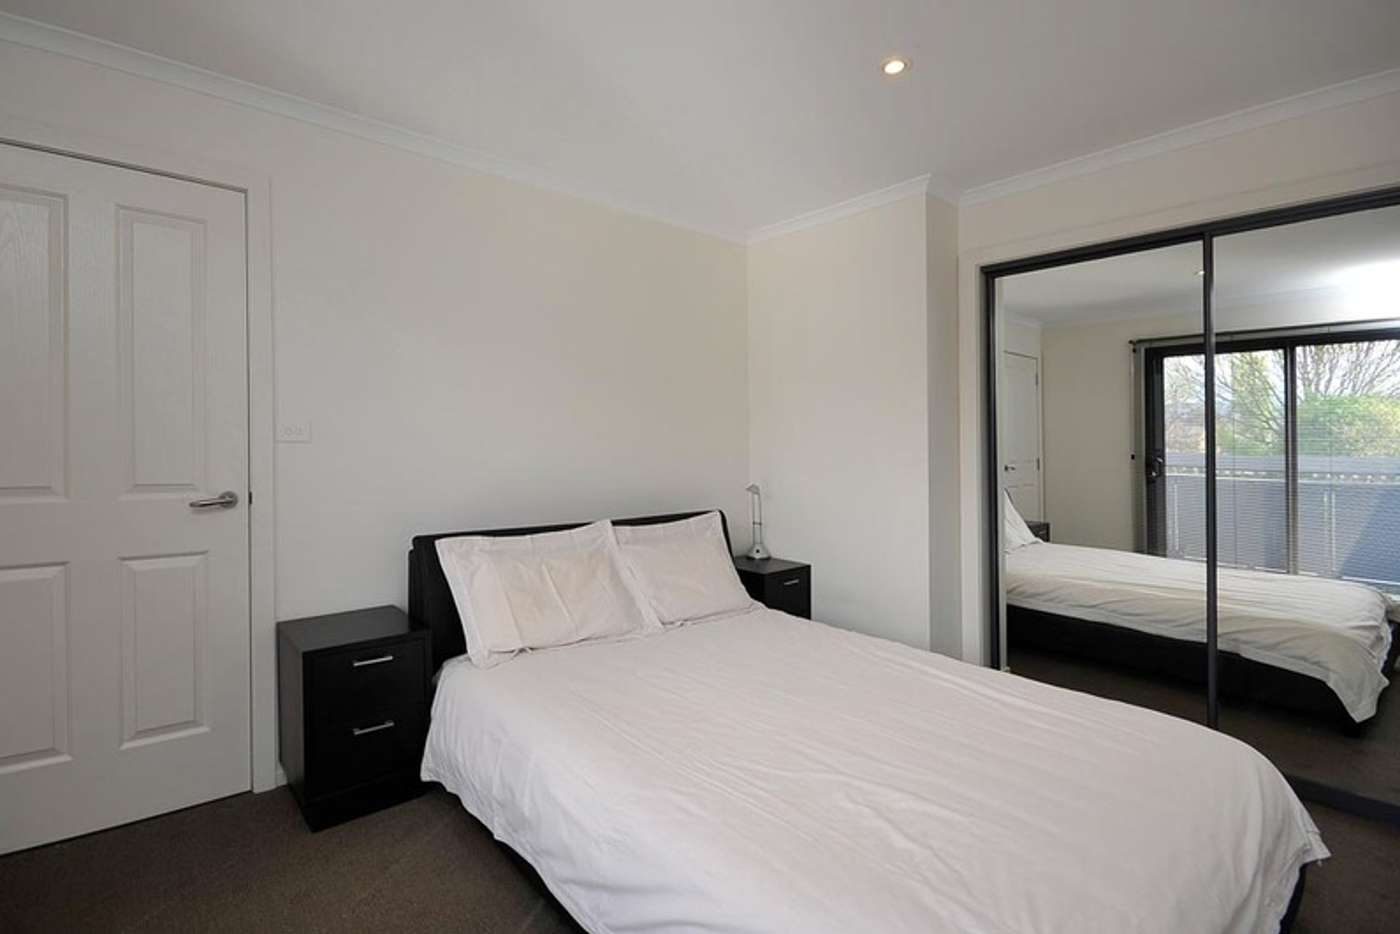 Sixth view of Homely unit listing, 5/4 Bryan Street, Invermay TAS 7248